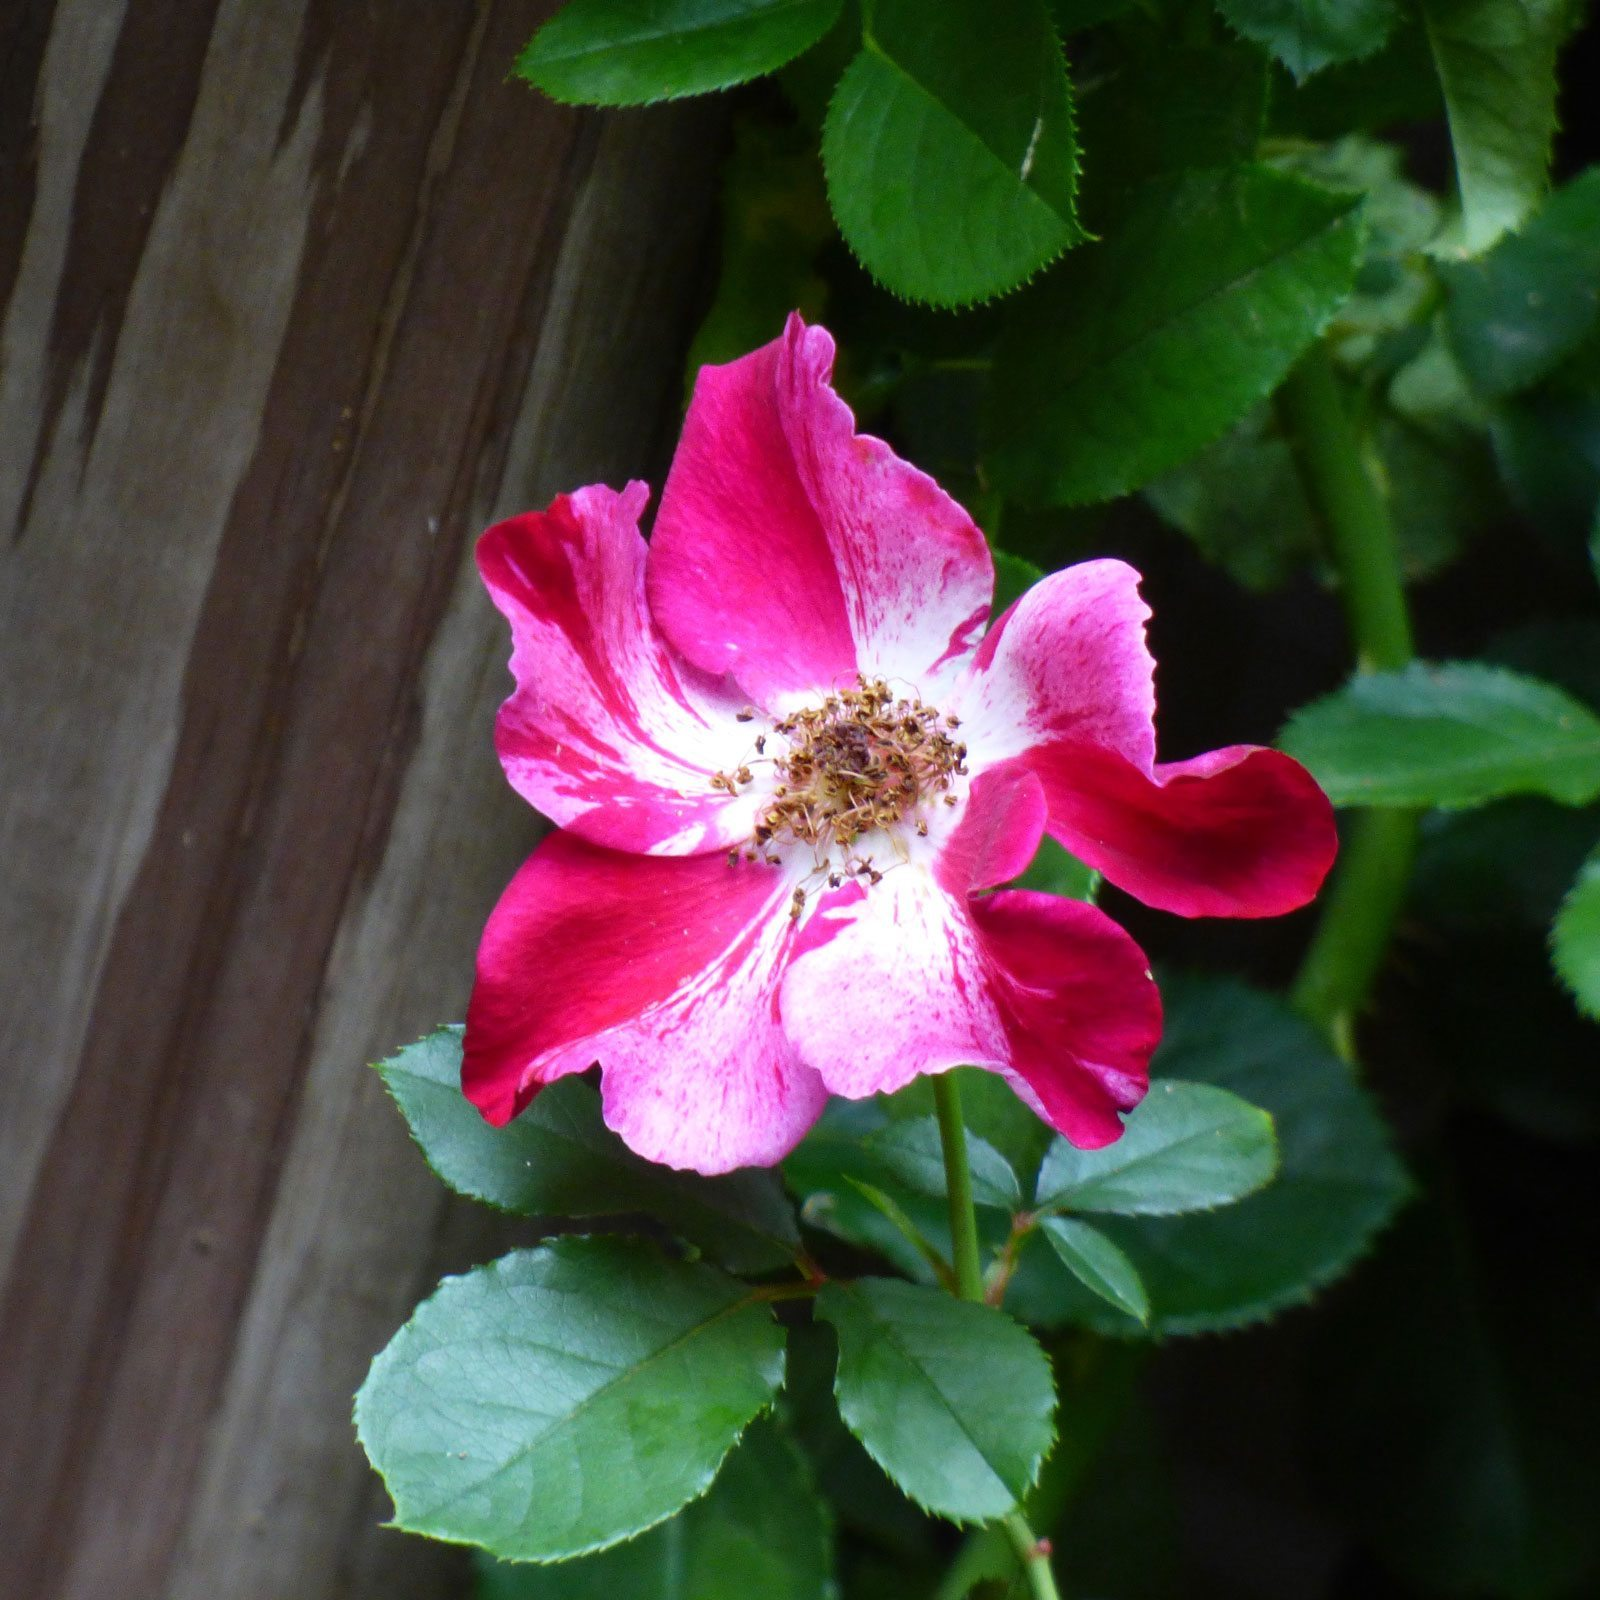 Climbing Roses For Zone 8 Tips On Growing Climbing Roses In Zone 8